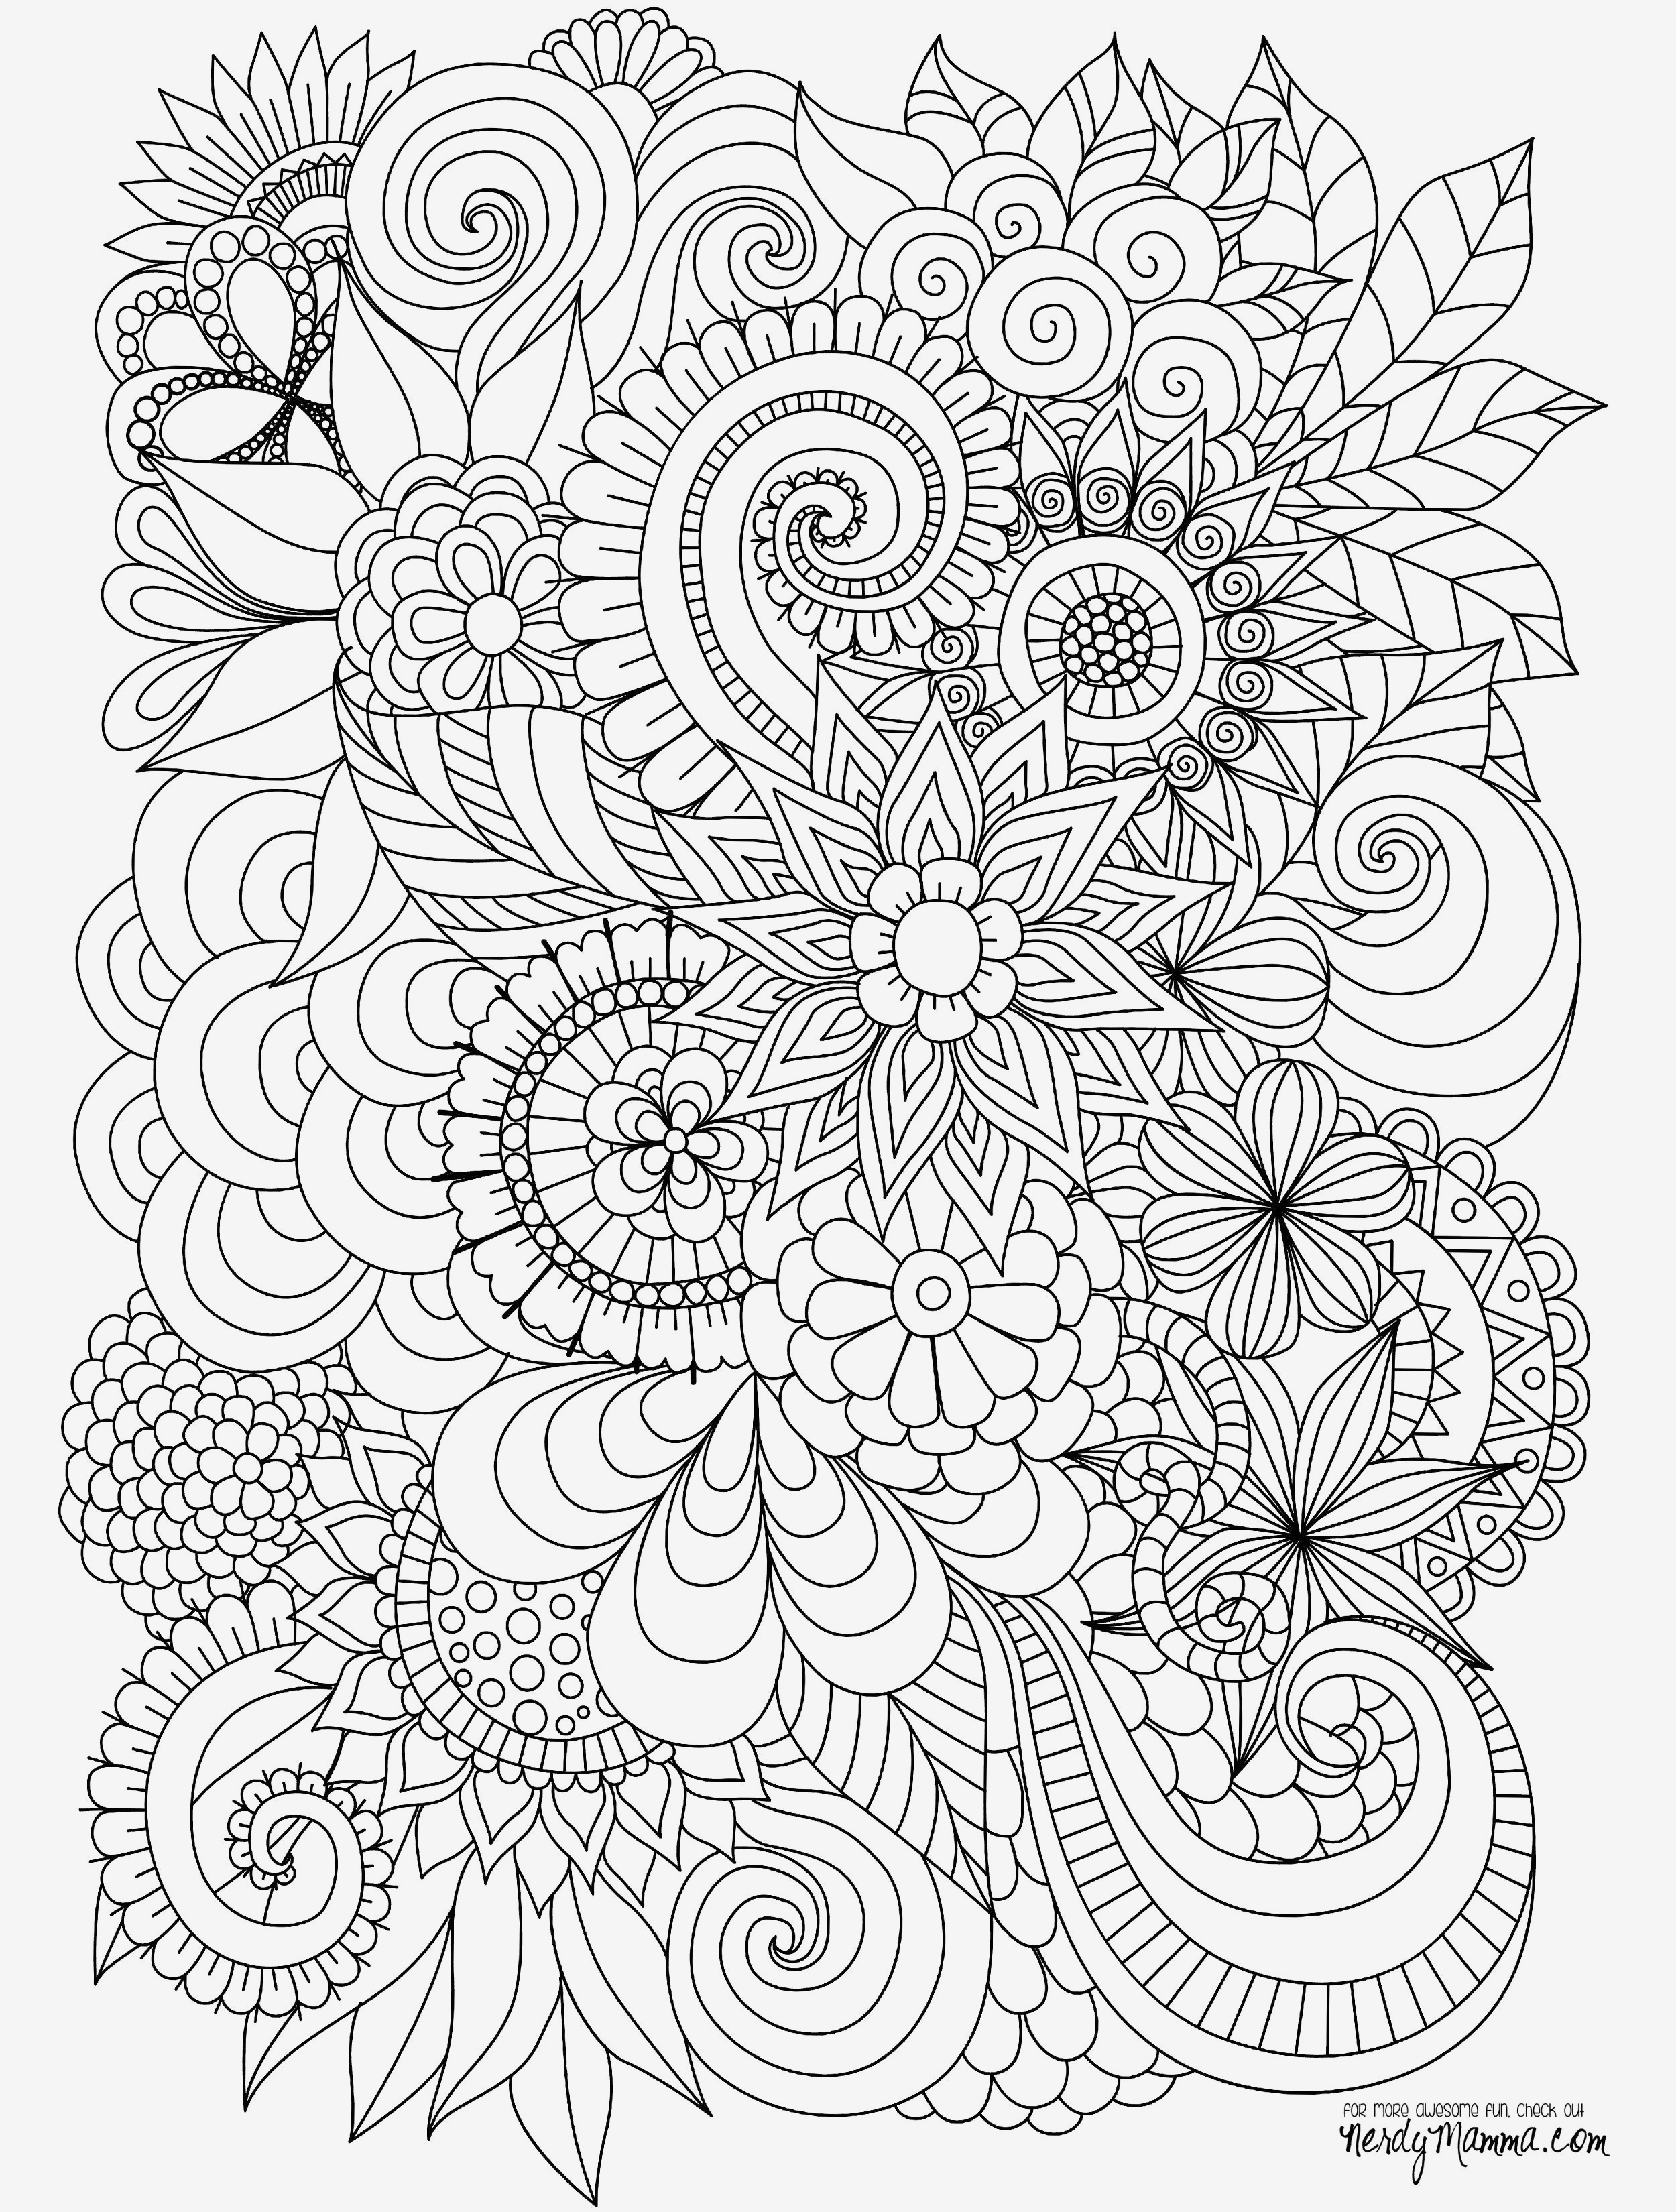 22 Mosaic Color By Number Coloring Pages Collection Coloring Sheets